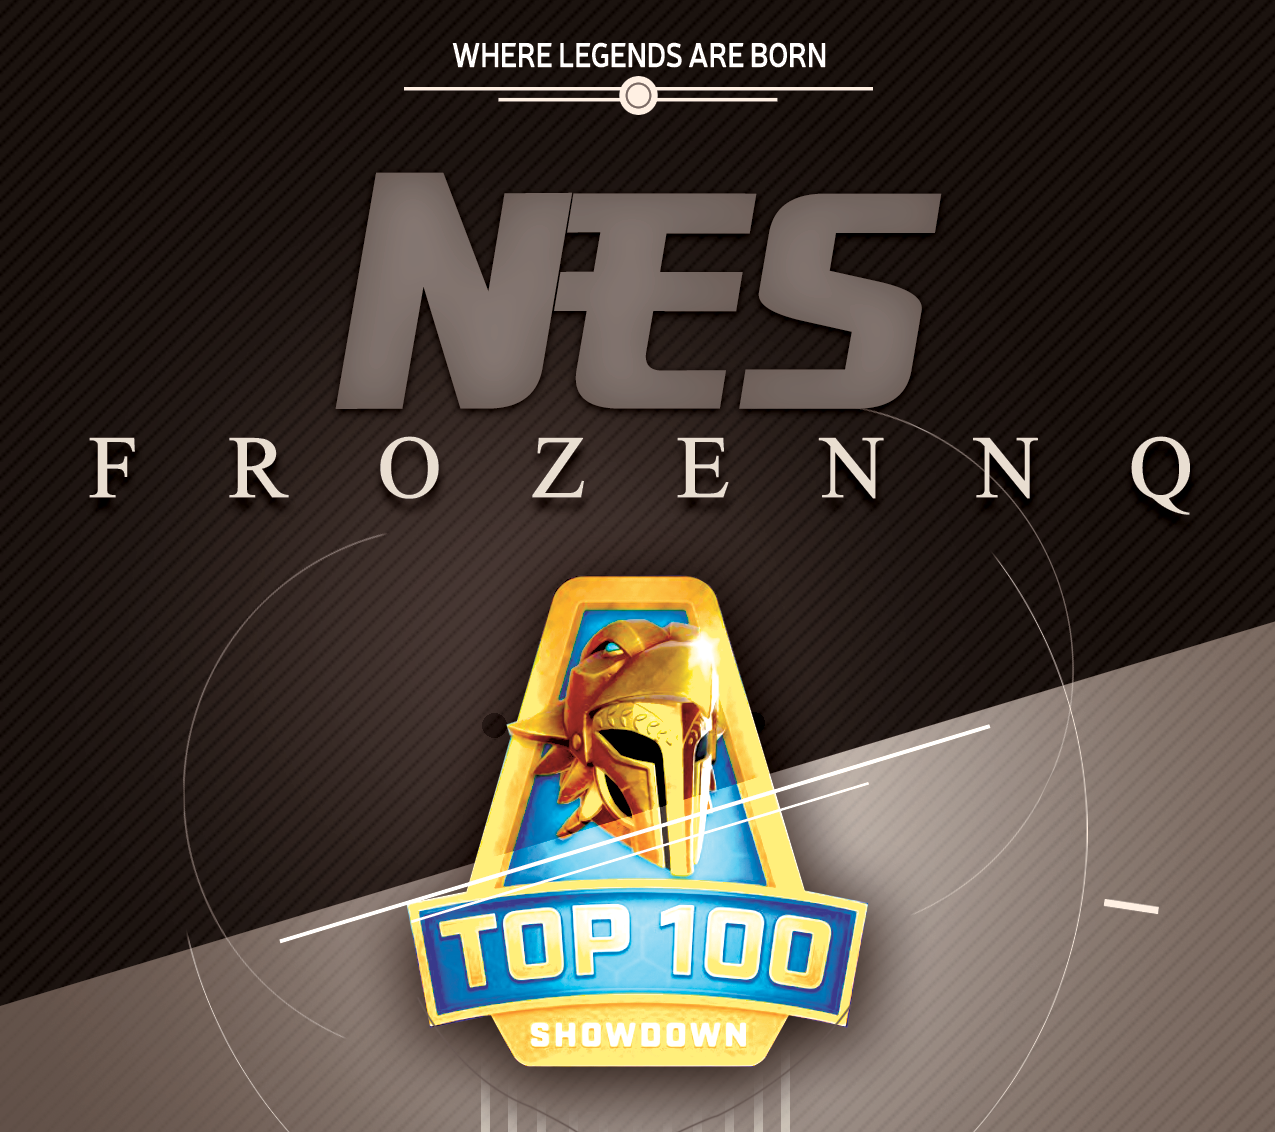 FrozenNQ remporte le Top100 Showdown Darwin Project